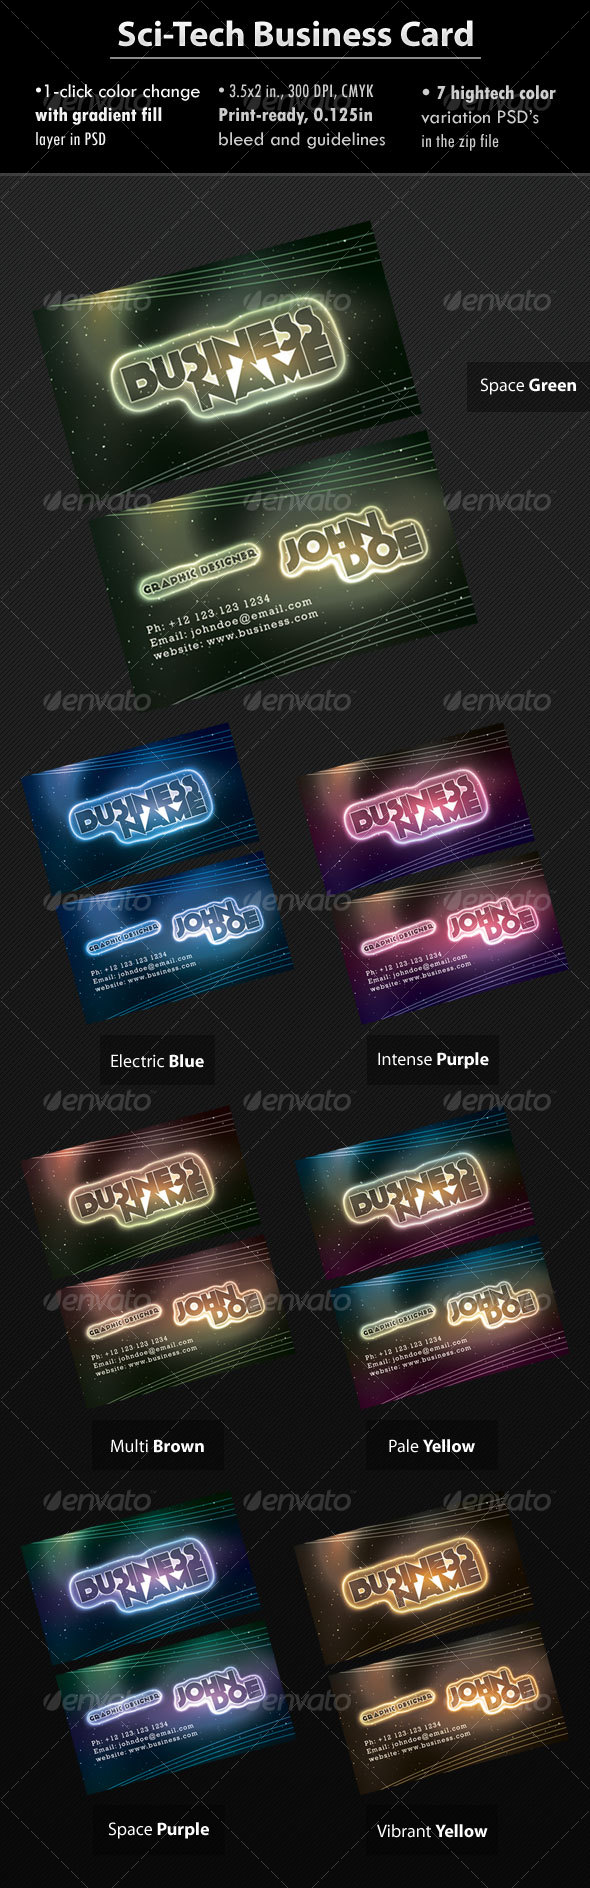 Sci-Tech Business Card by Raincutter | GraphicRiver